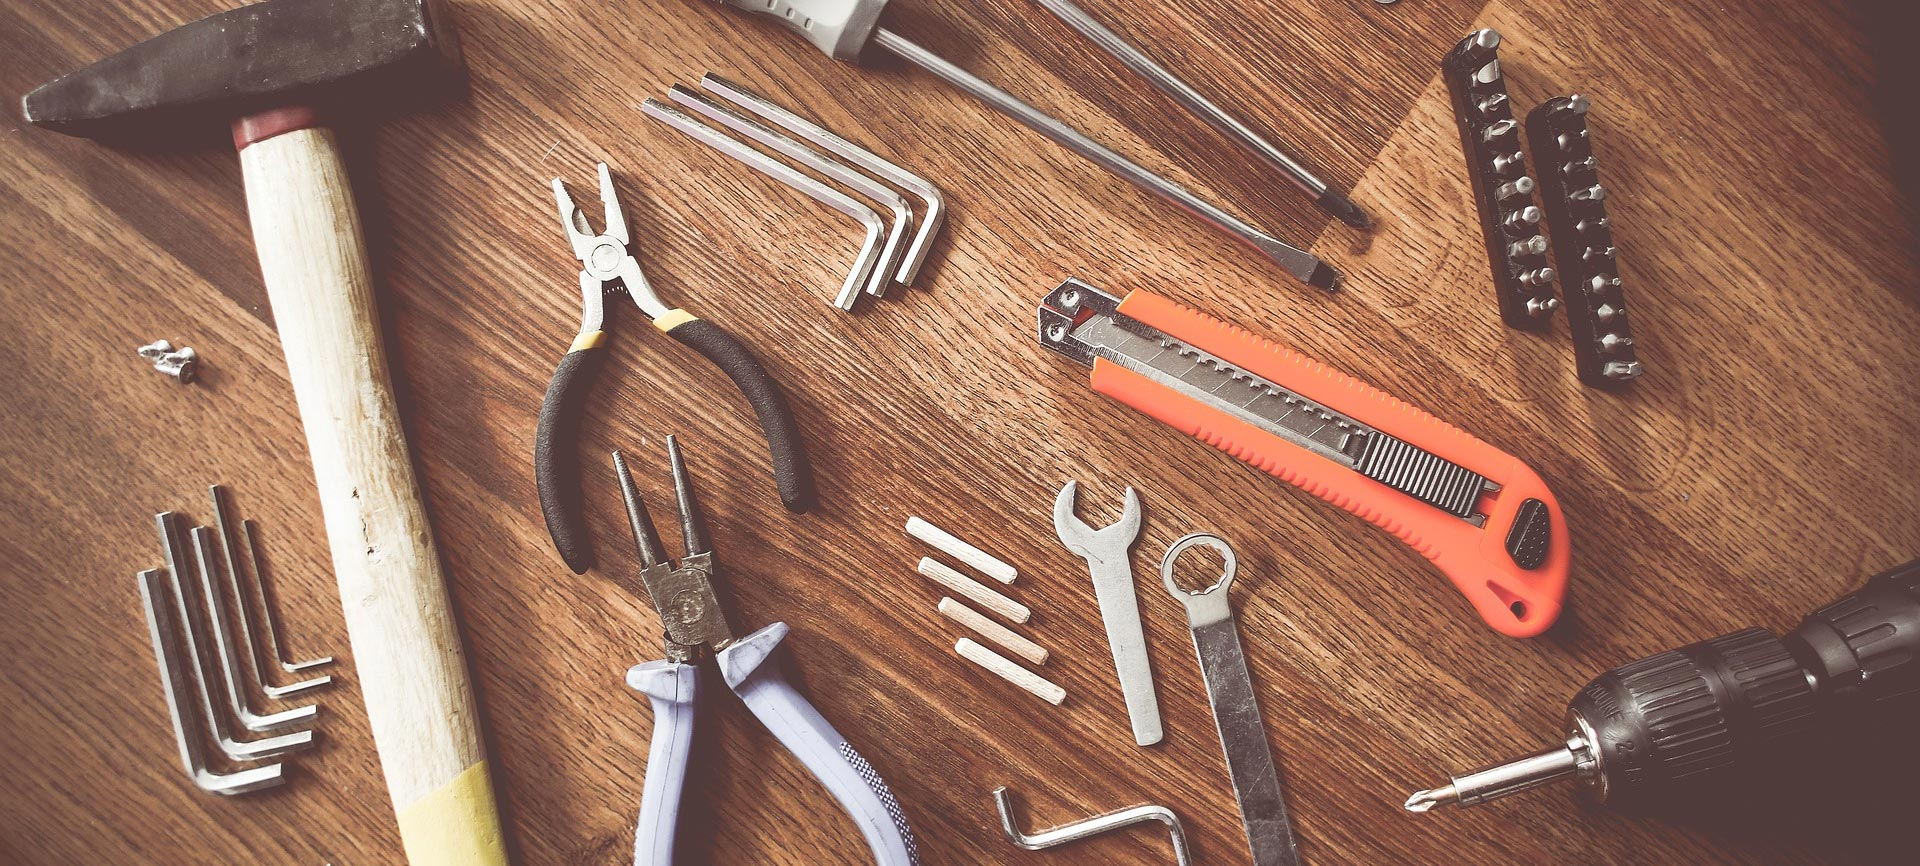 tools for renovations